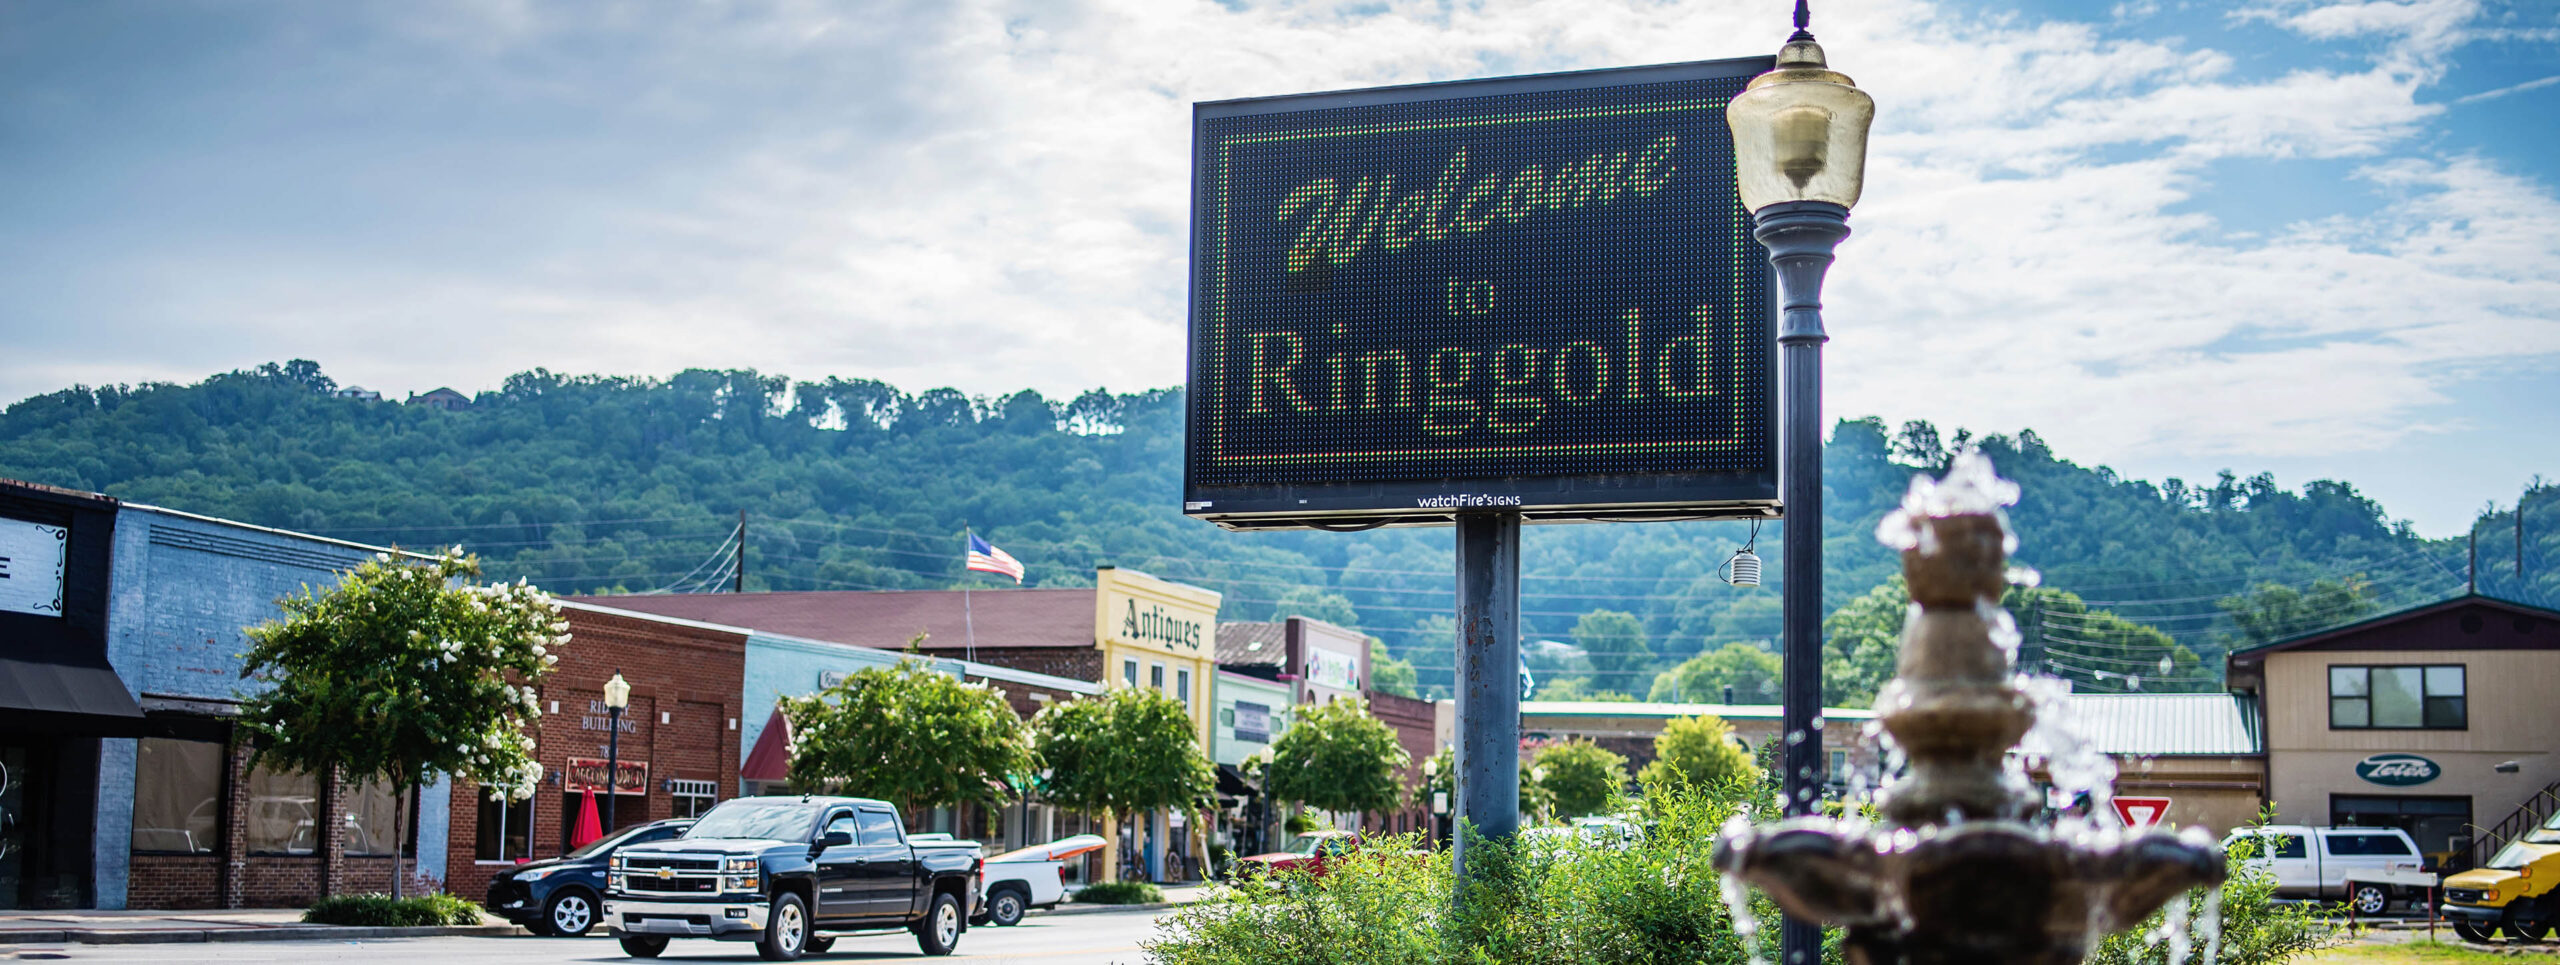 welcome to ringgold sign on skyline